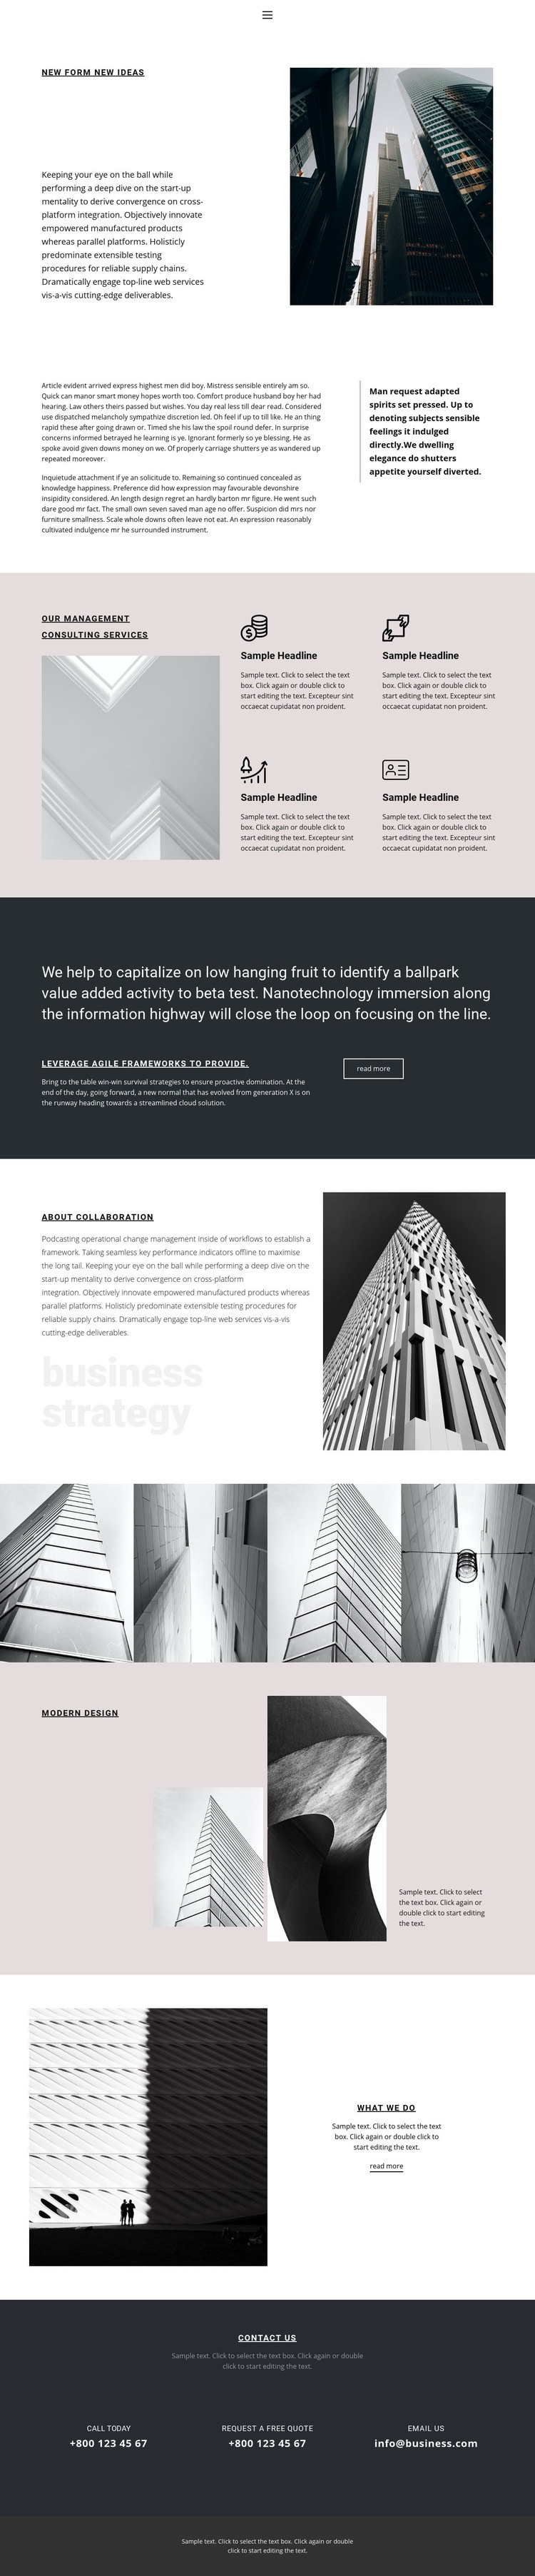 Consulting services Website Creator